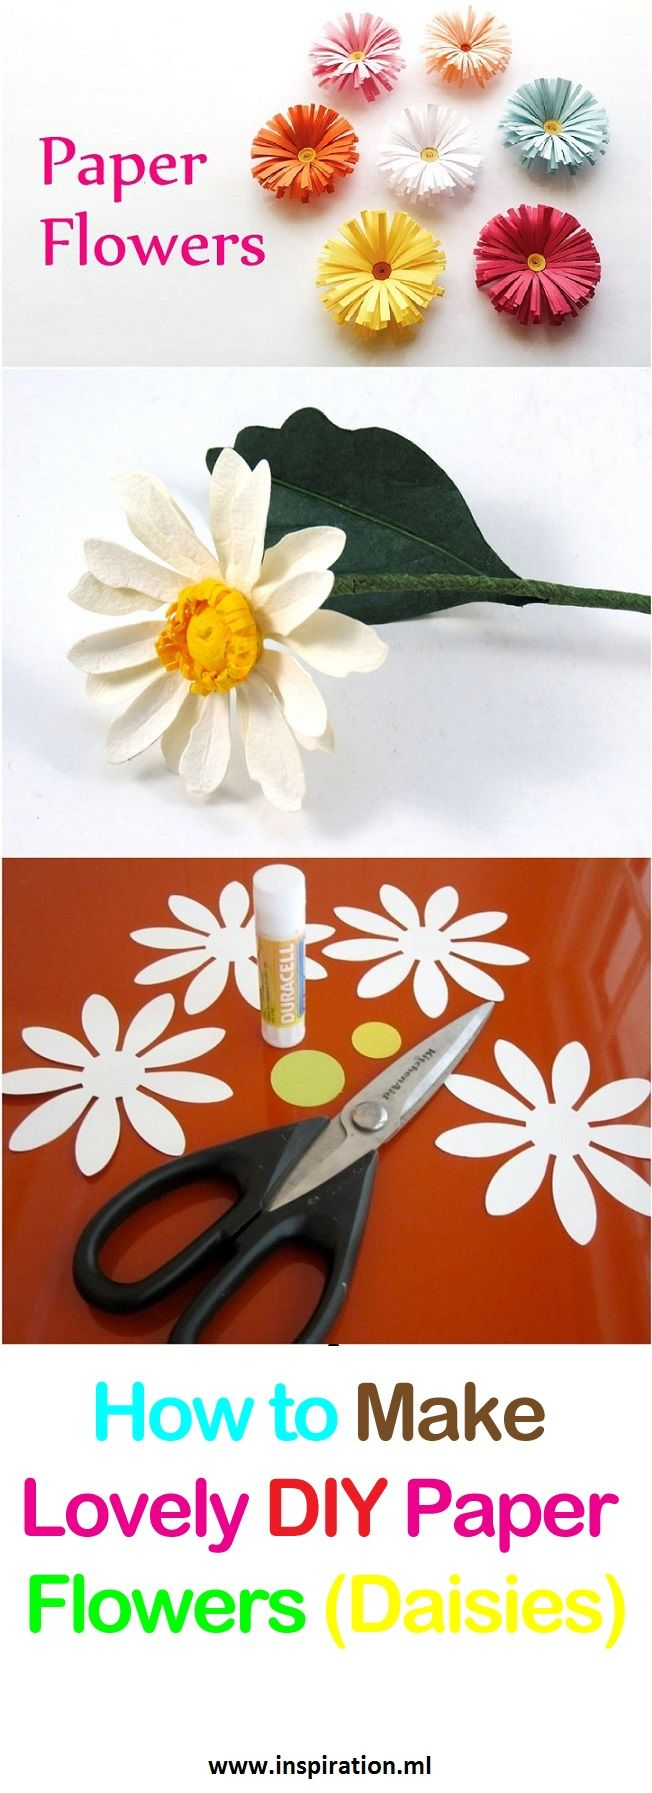 How To Make Lovely Paper Flowers Daisies Manualidades